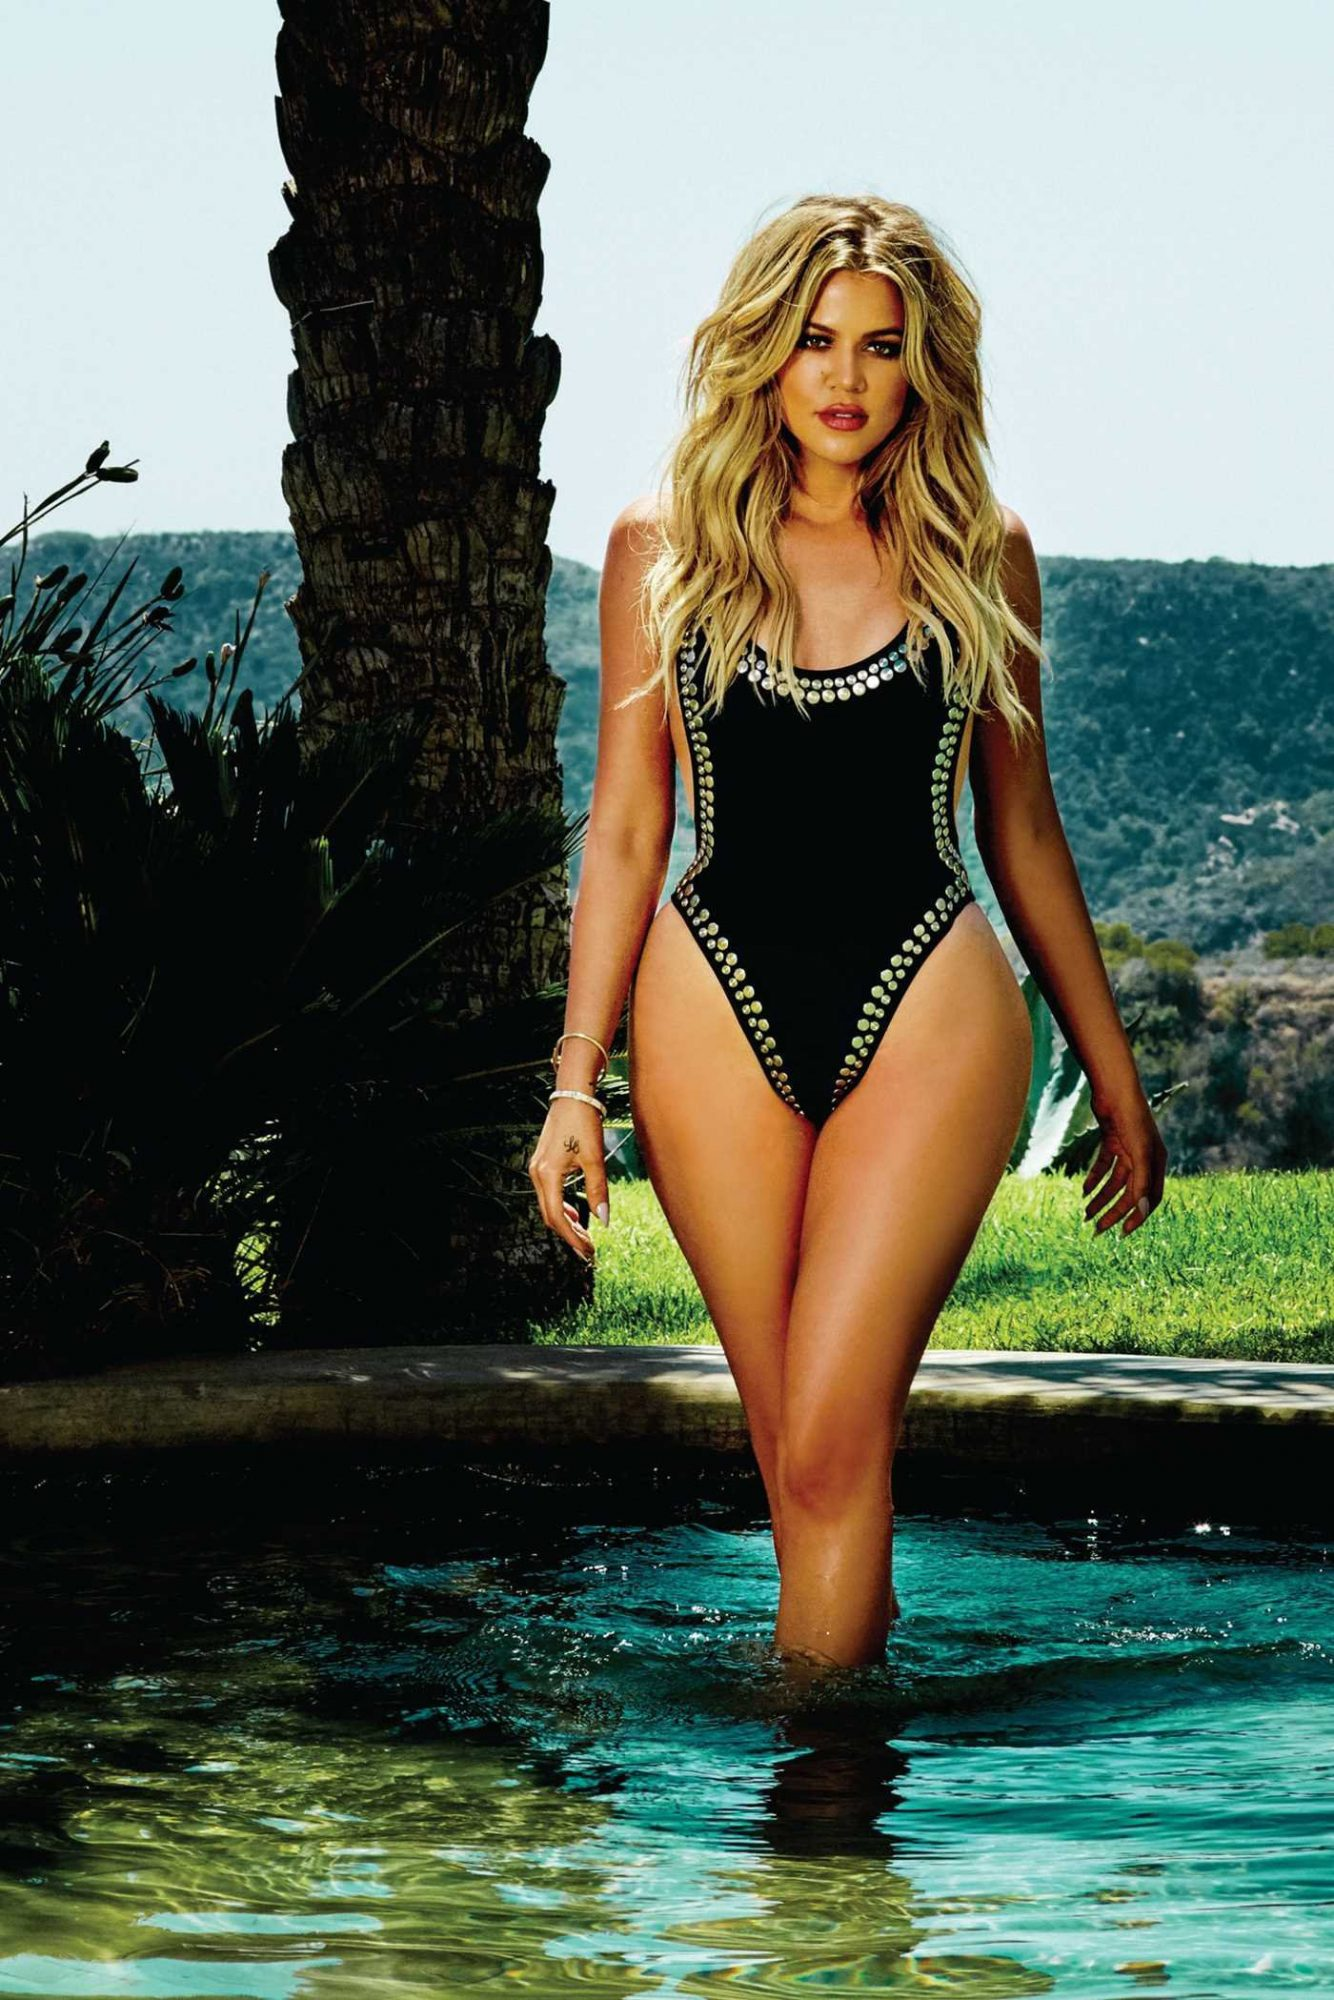 Khloe Kardashian Wears Bathing Suit Inside Book Strong